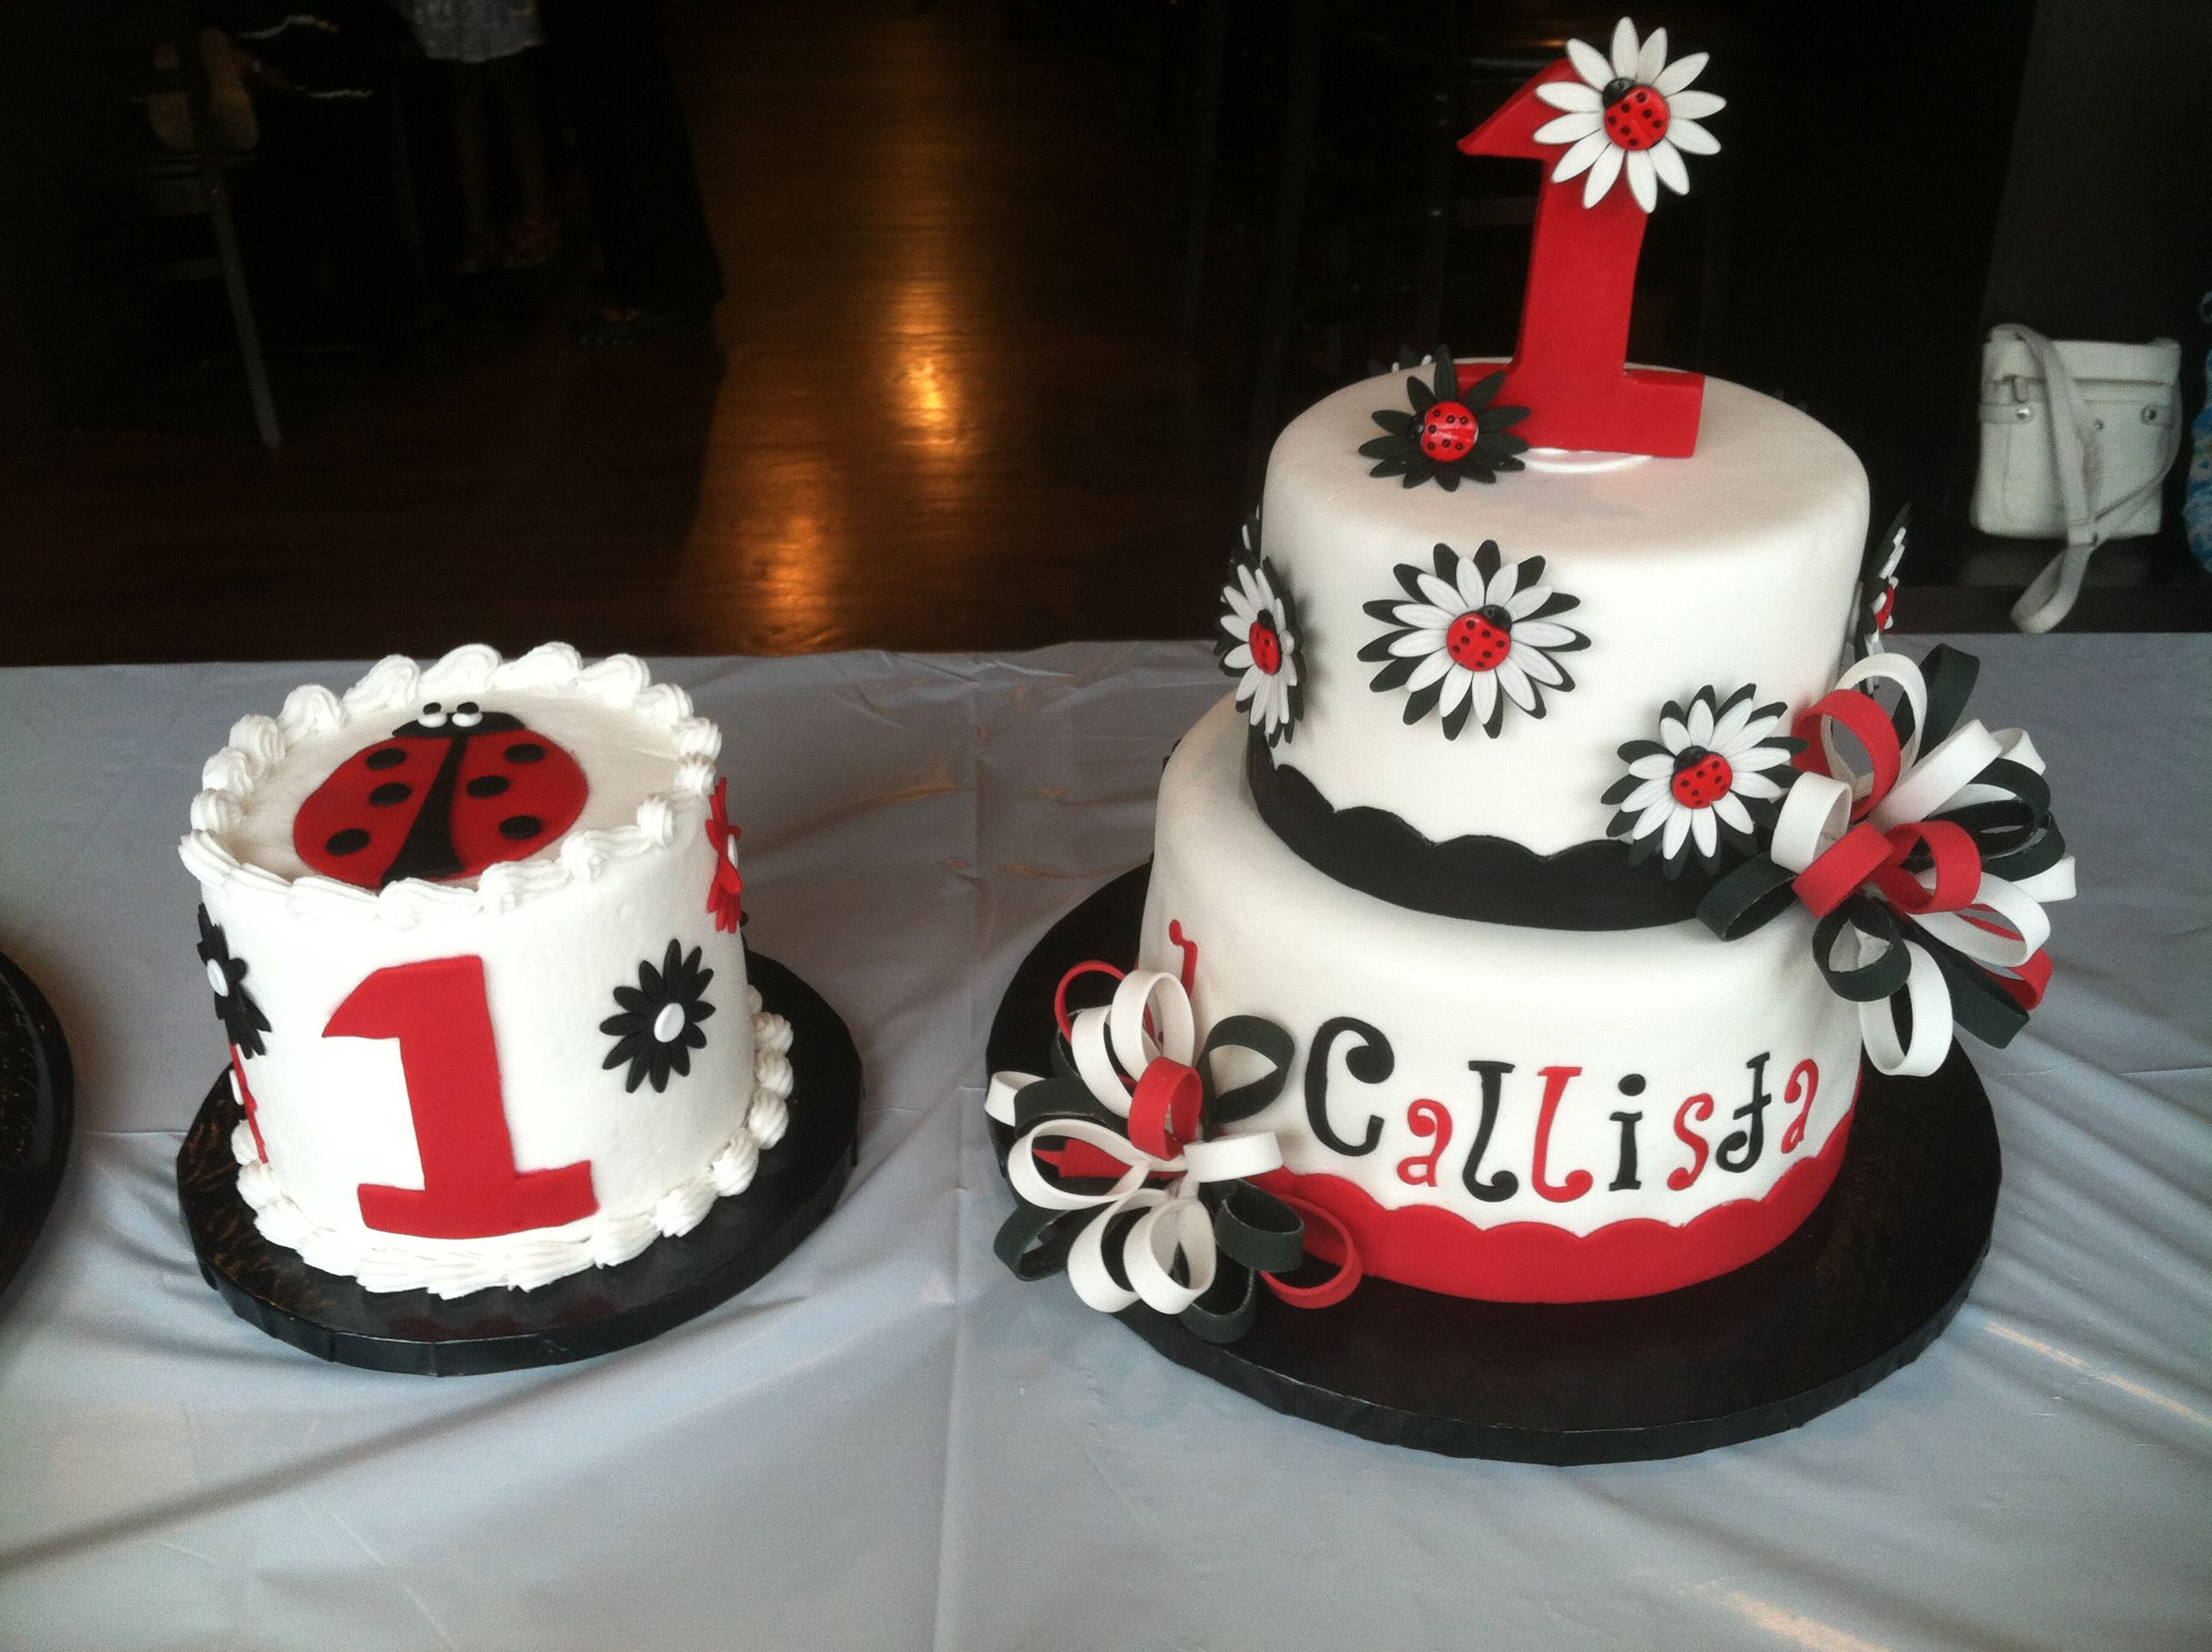 Groovy Ladybug Cake And Smash Cake I Made For My Granddaughters First Personalised Birthday Cards Sponlily Jamesorg